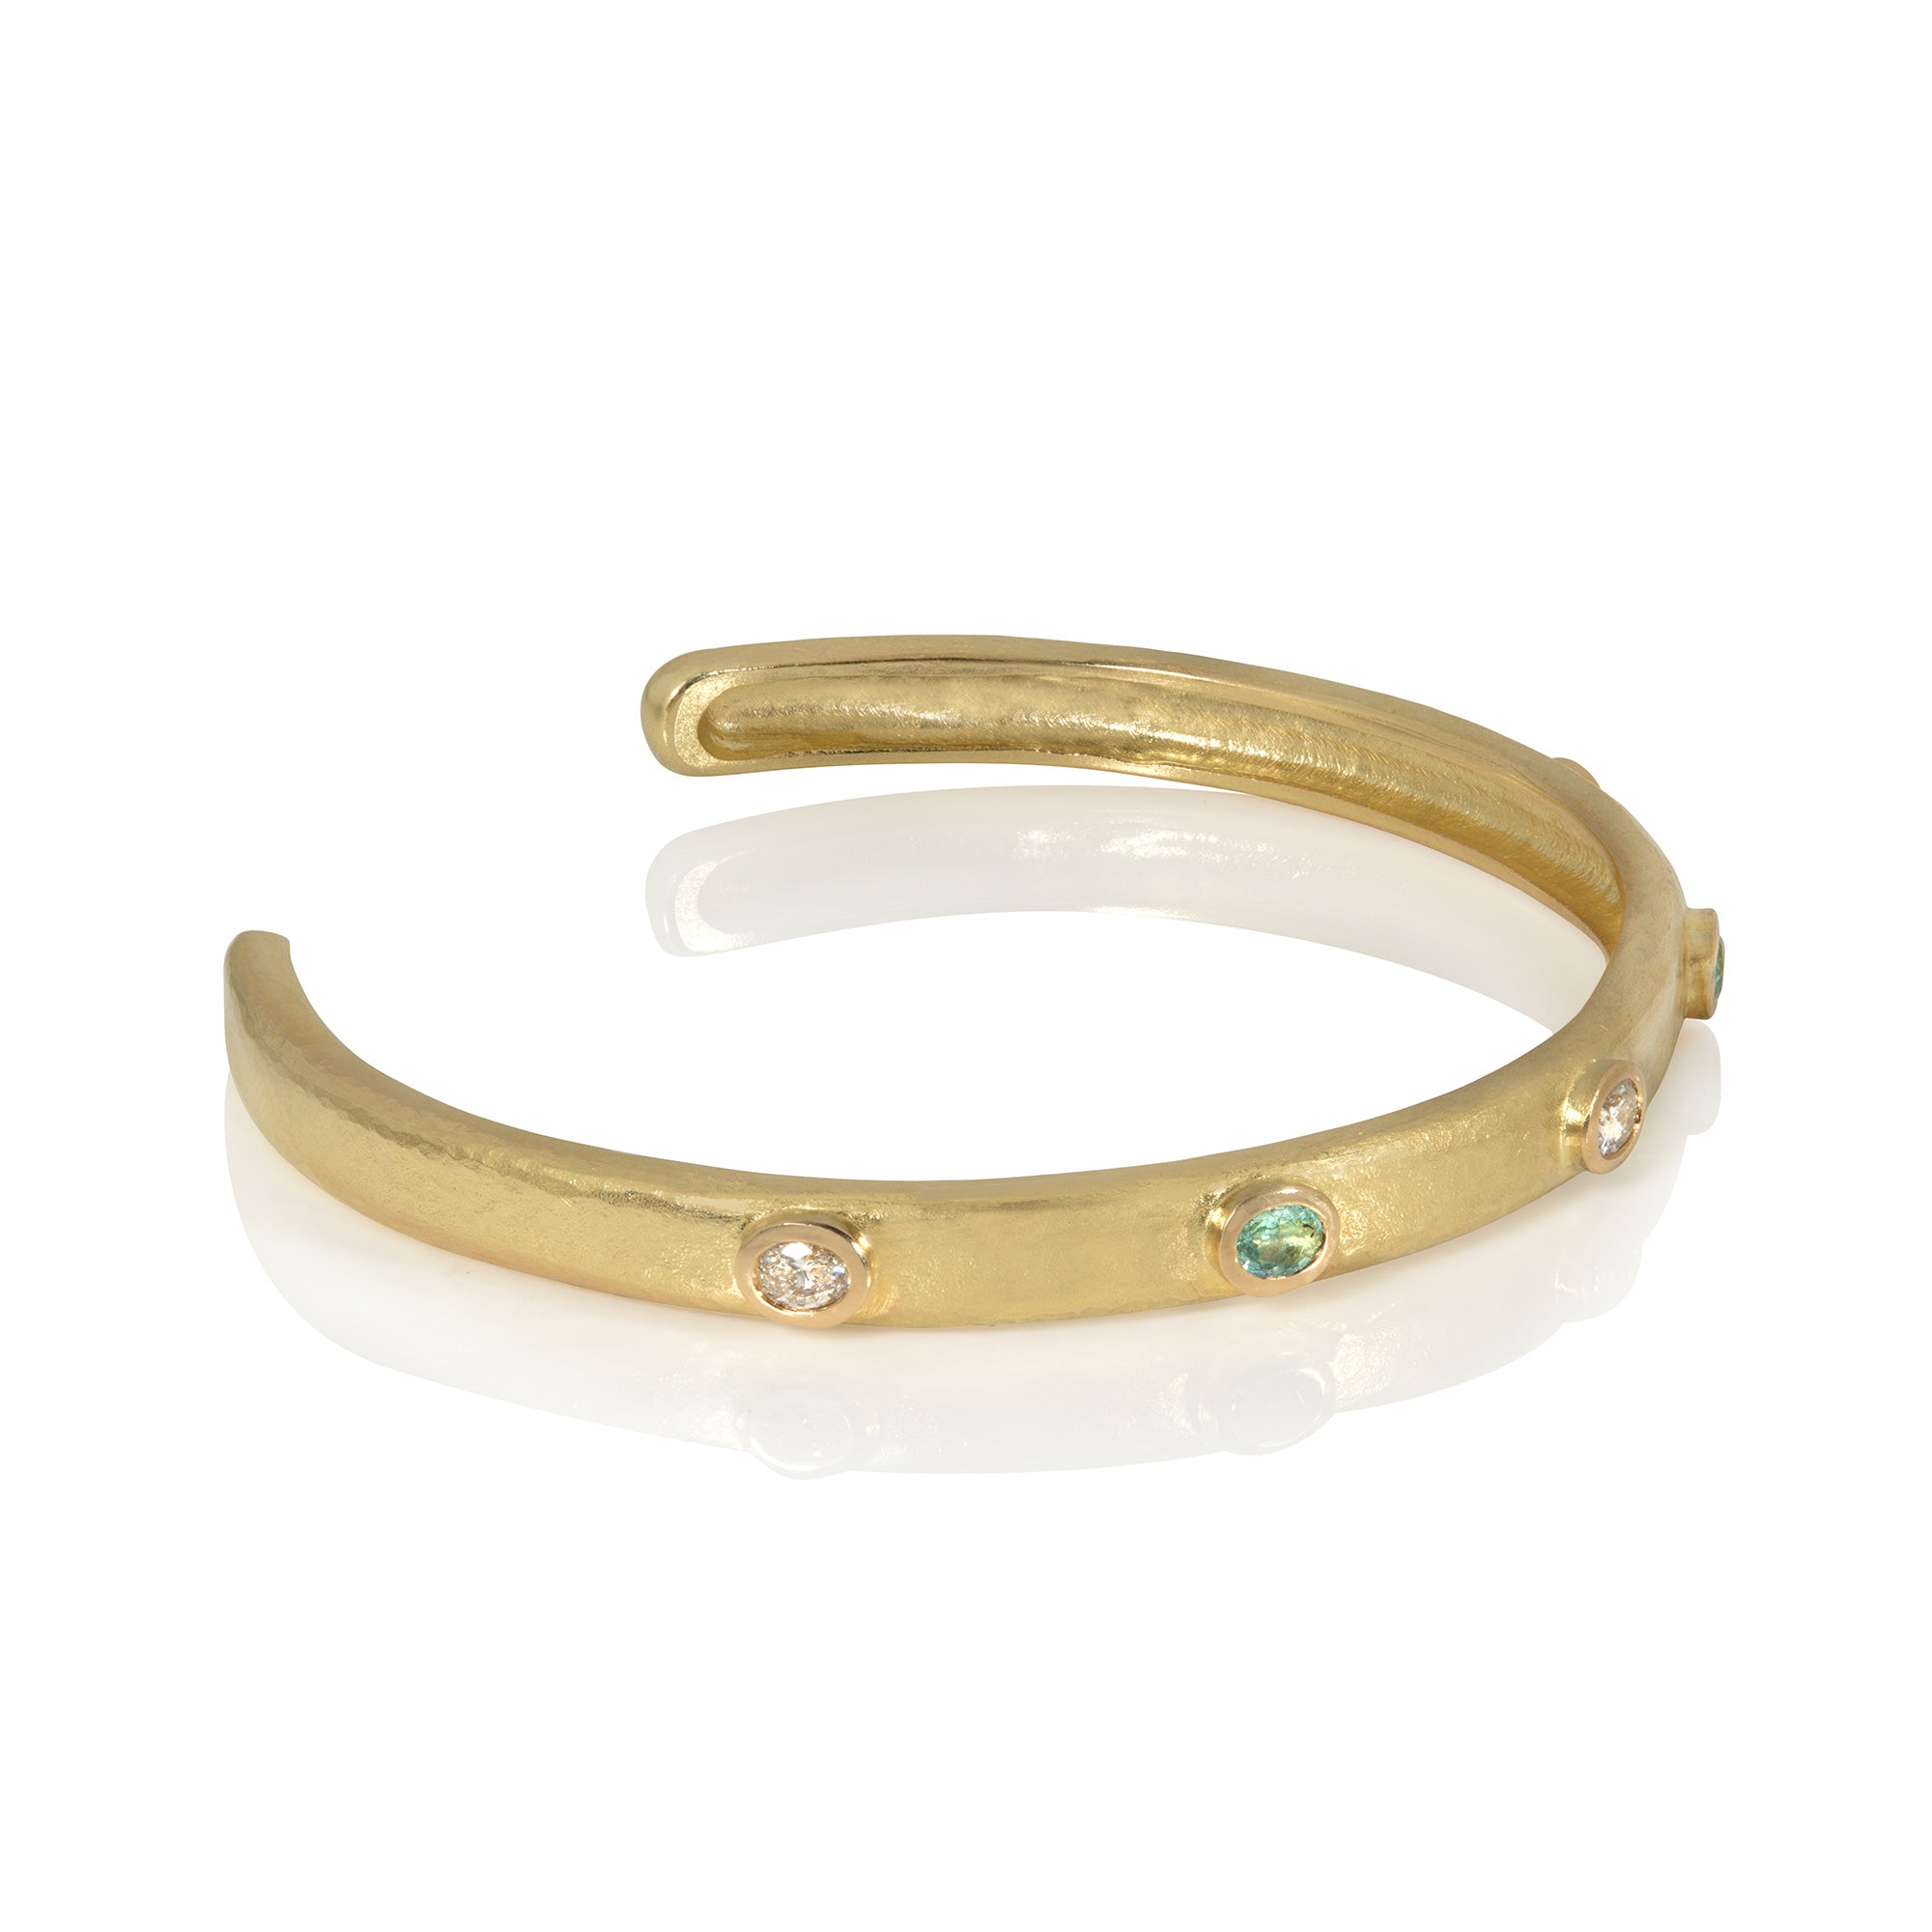 Diamond & Paraiba Tourmaline Bangle